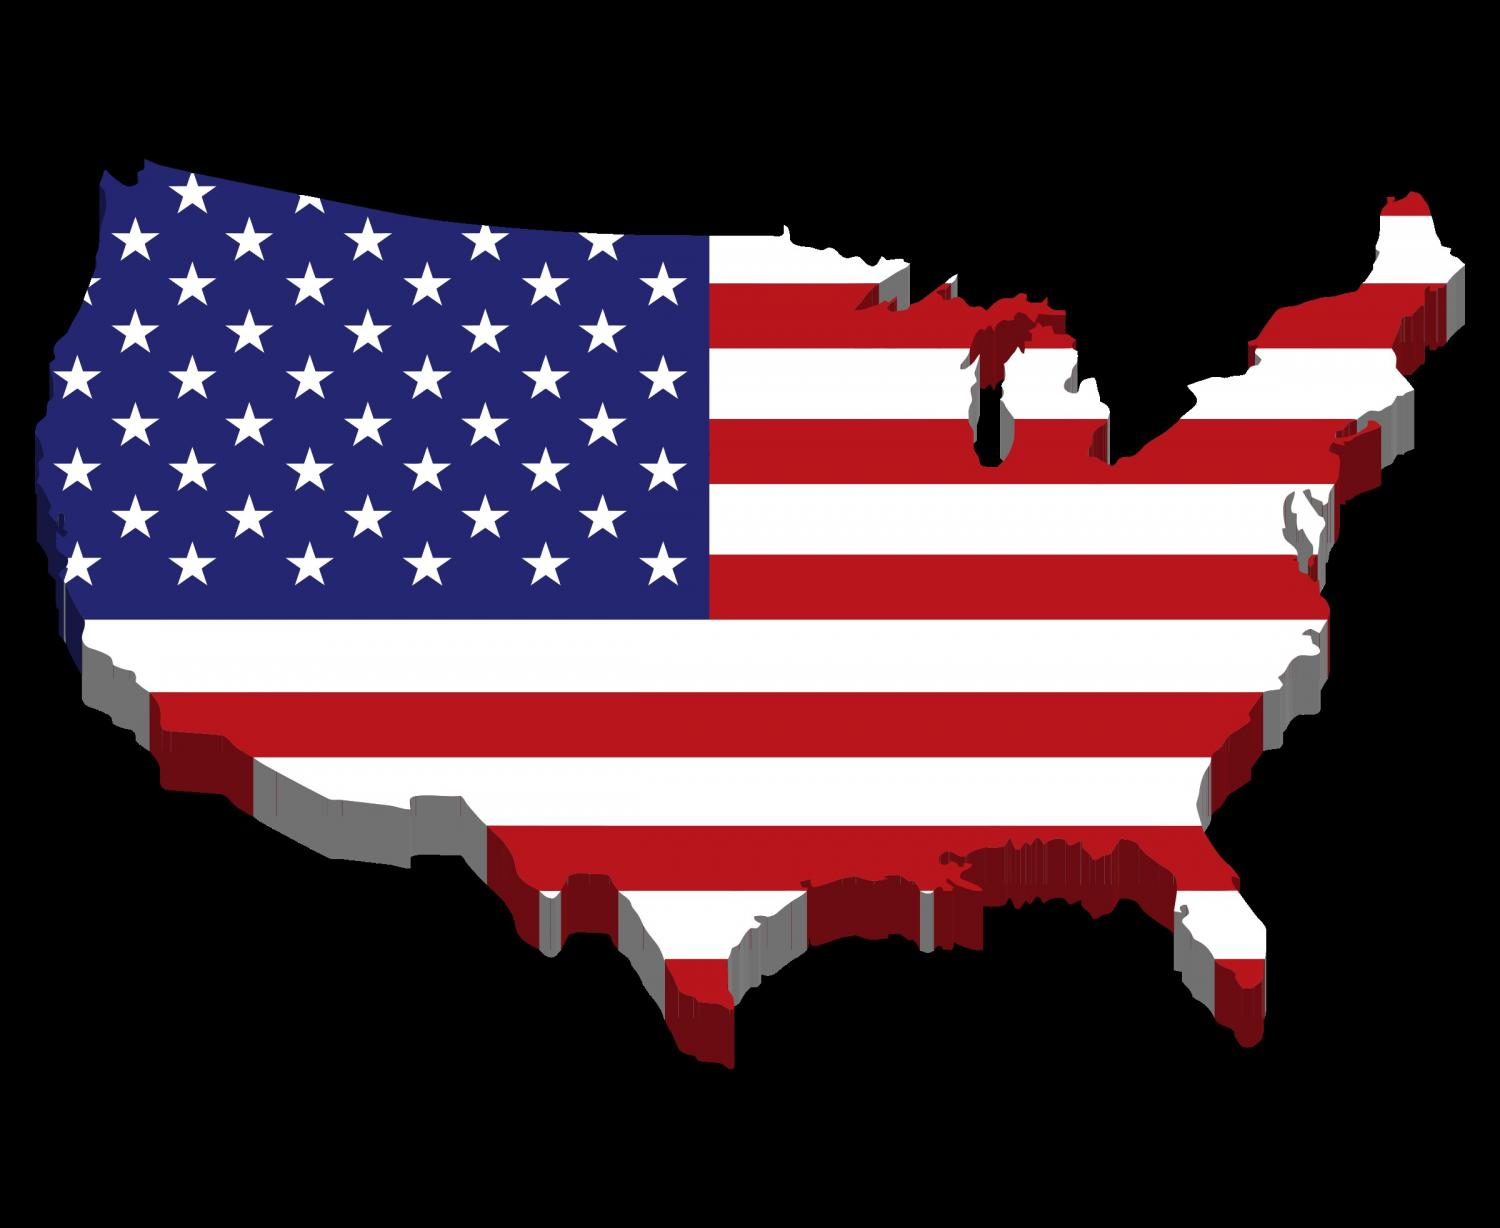 3d image of the united states with american flag overlay